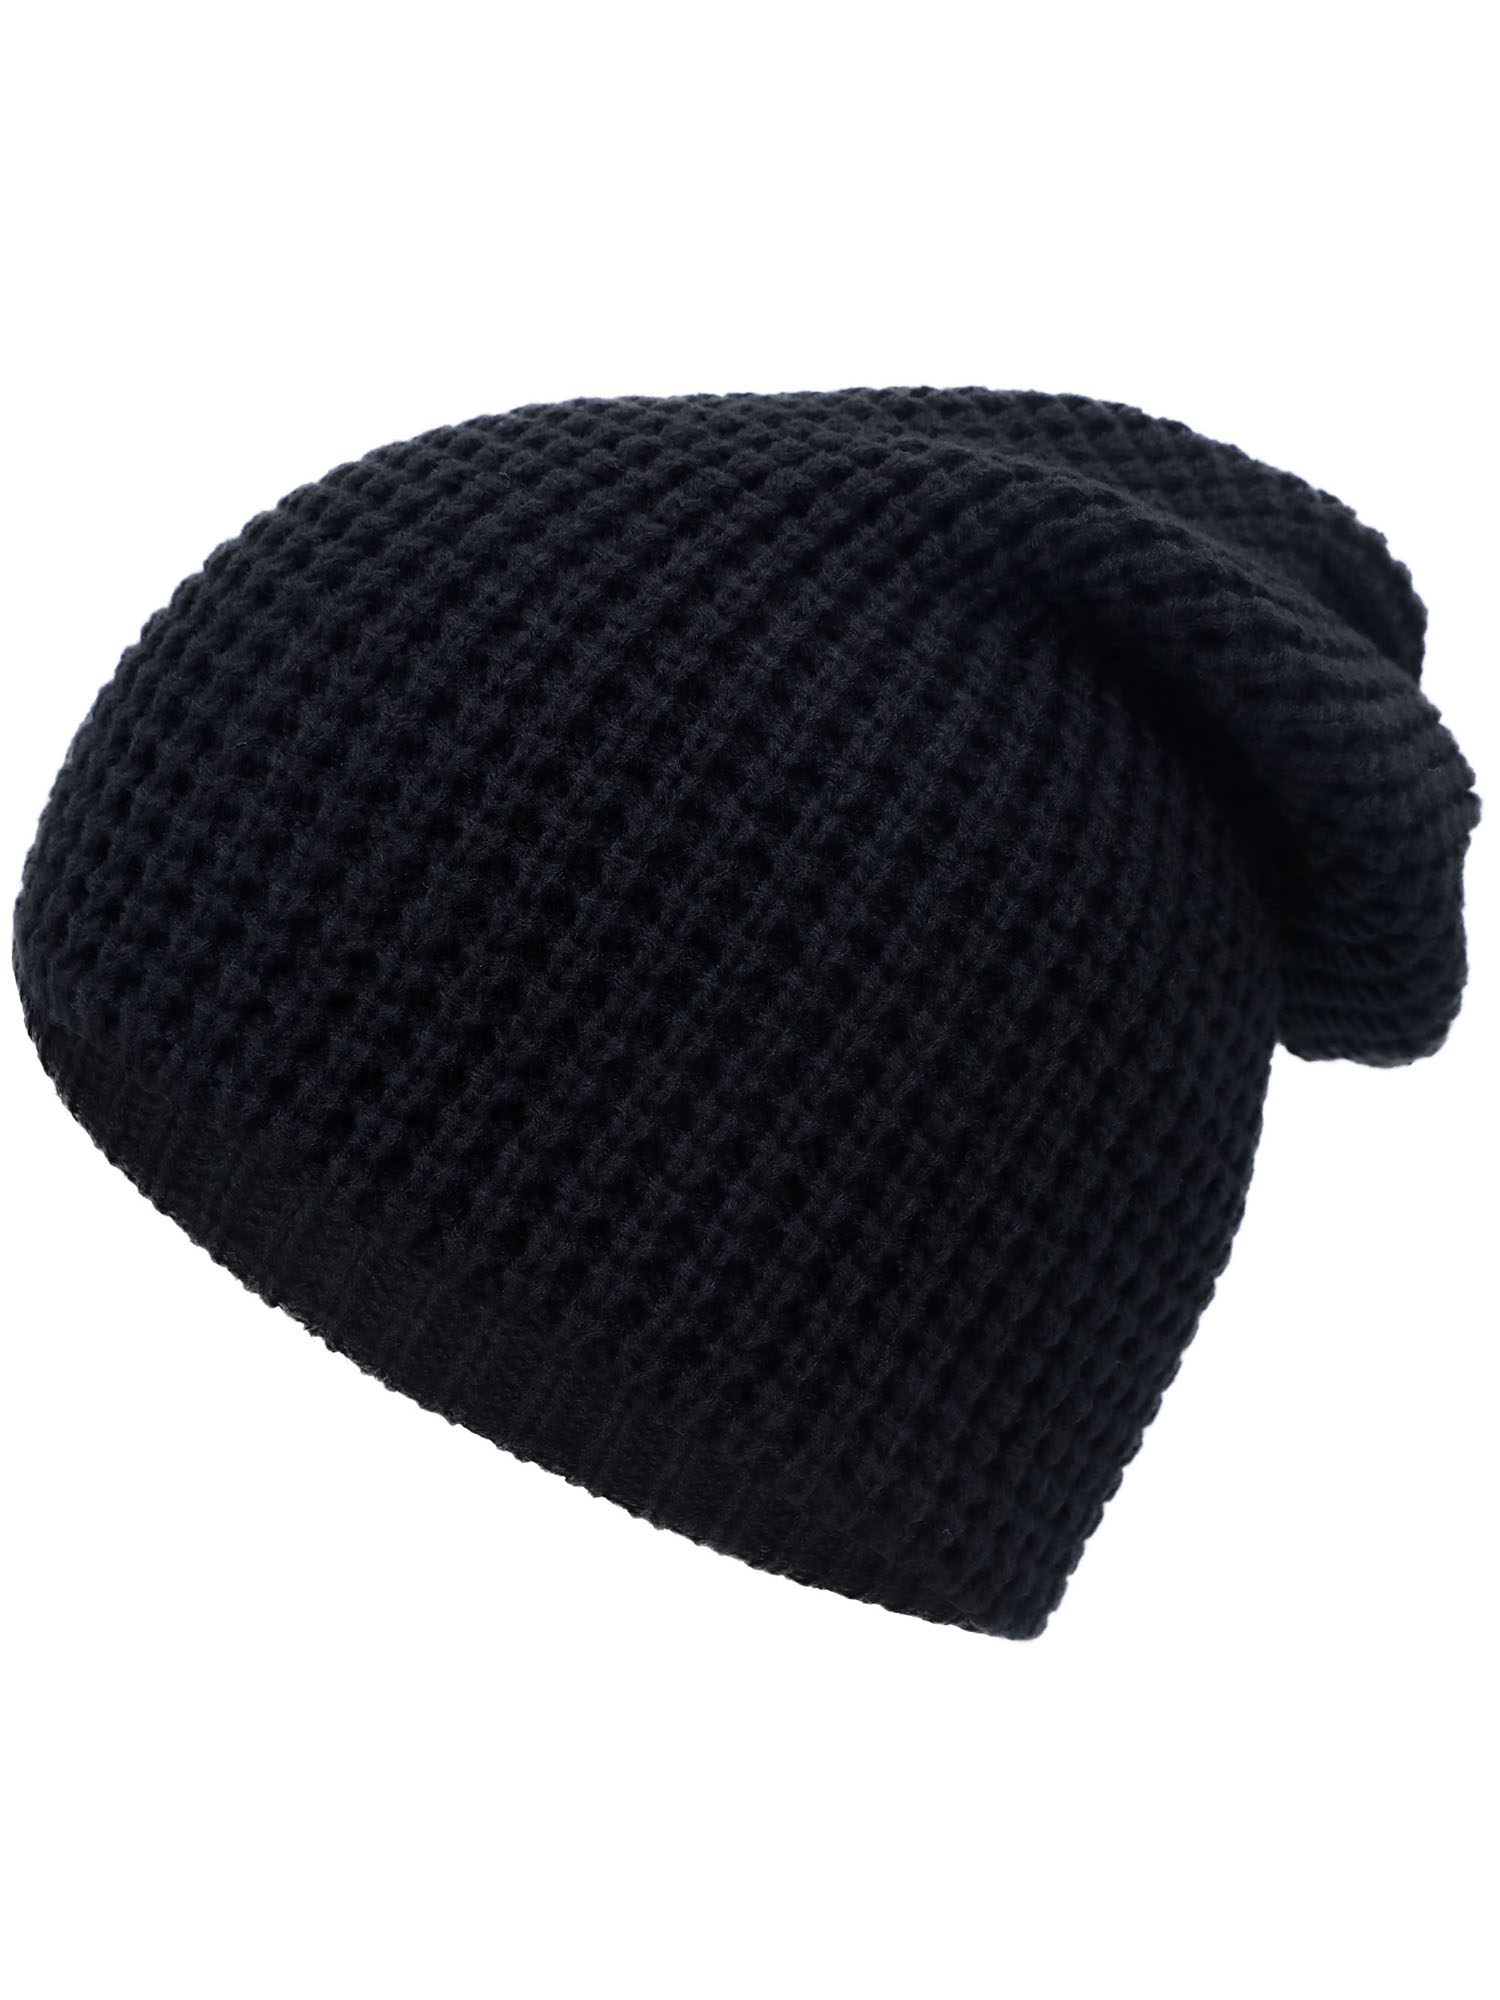 35cf764c825 Simplicity Men   Women s Thick Stretchy Knit Slouchy Skull Cap Beanie